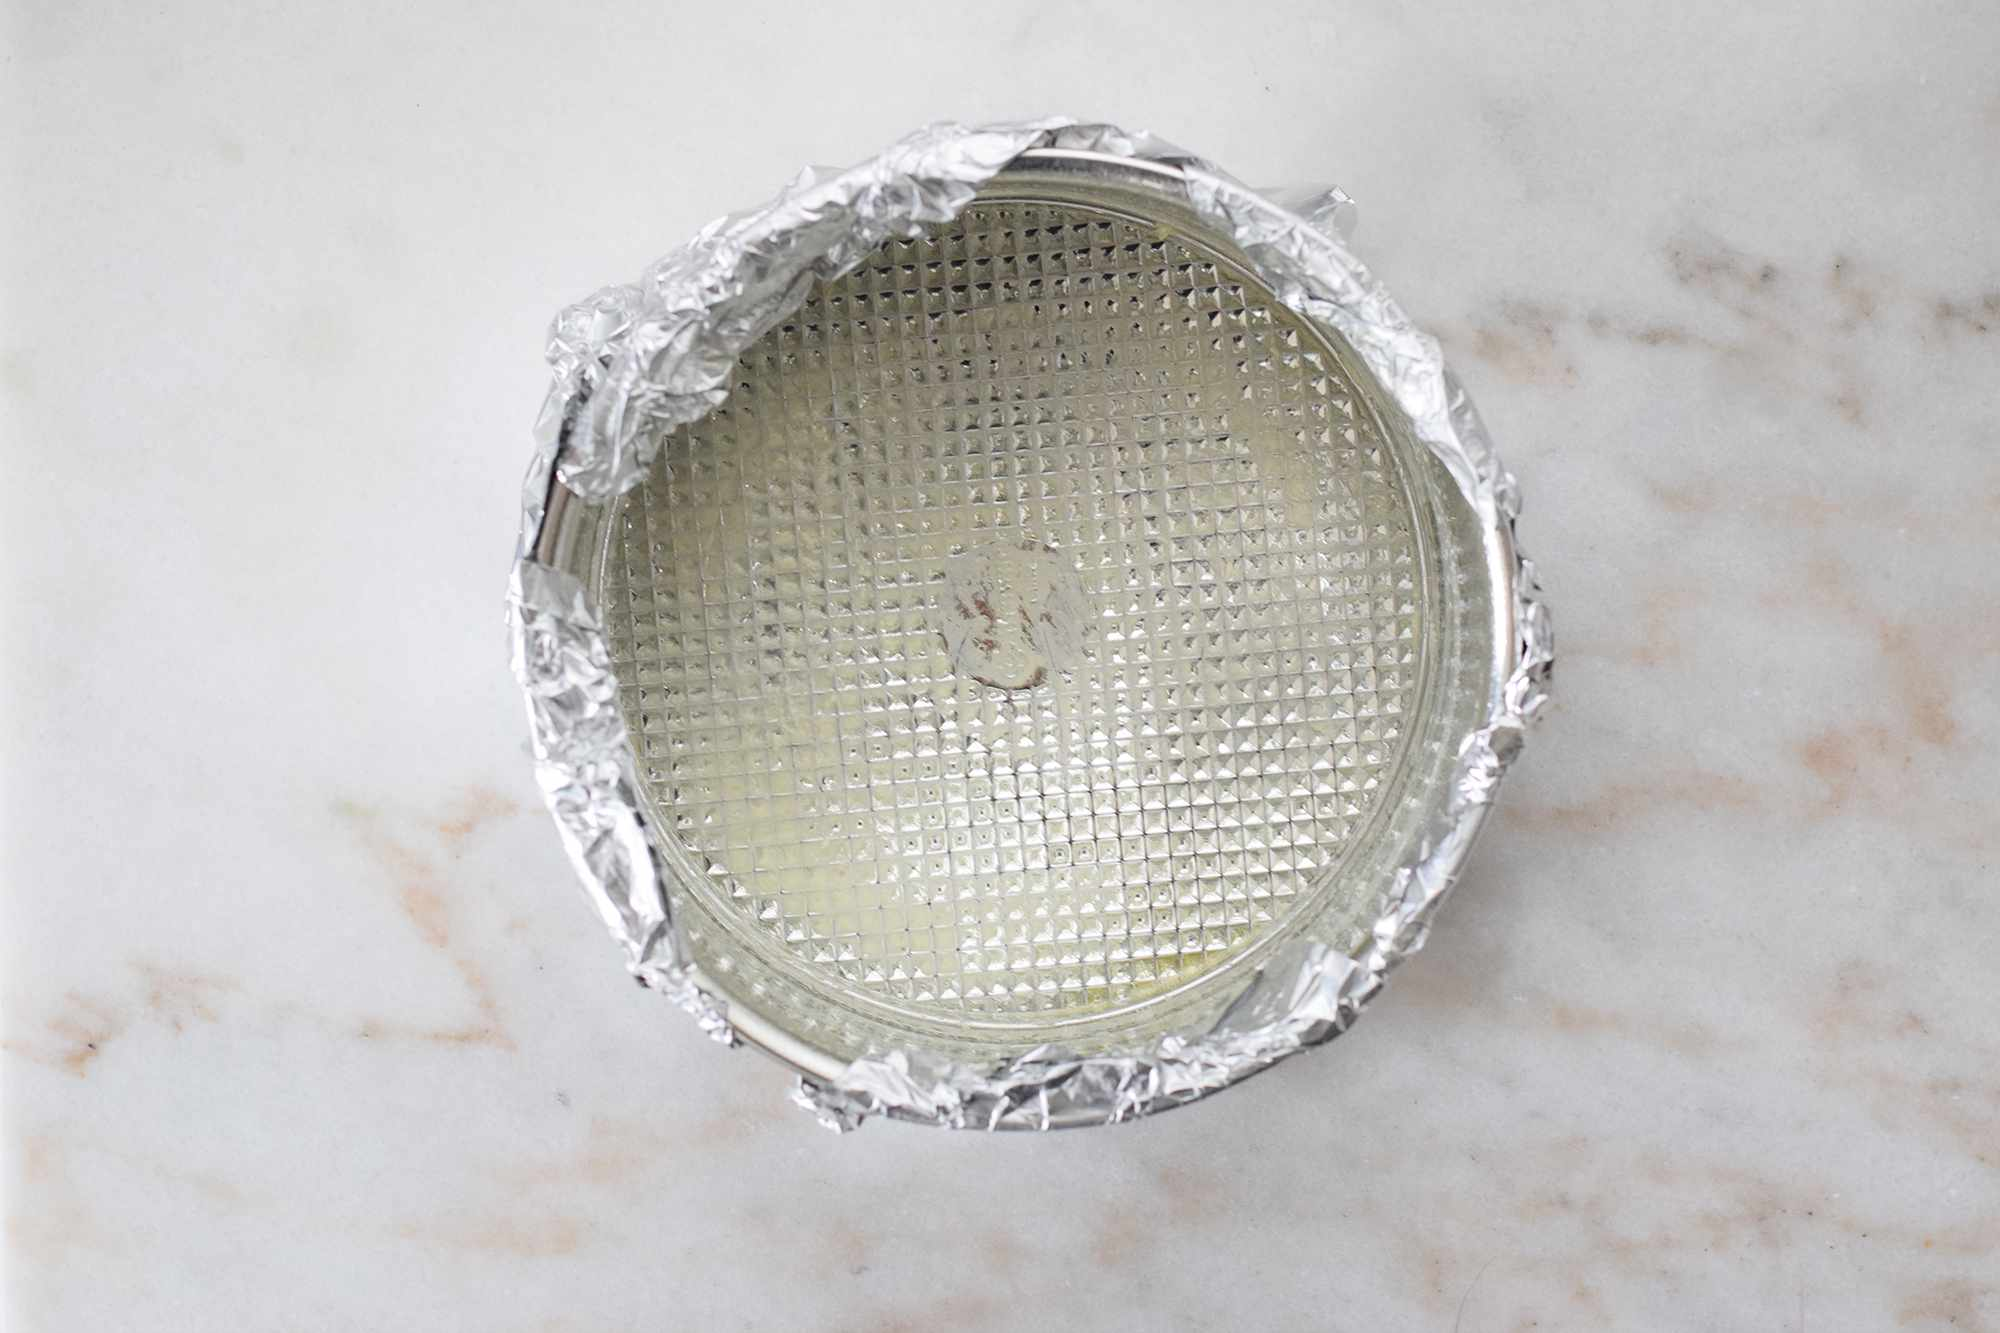 springform pan greased with butter and wrapped with foil